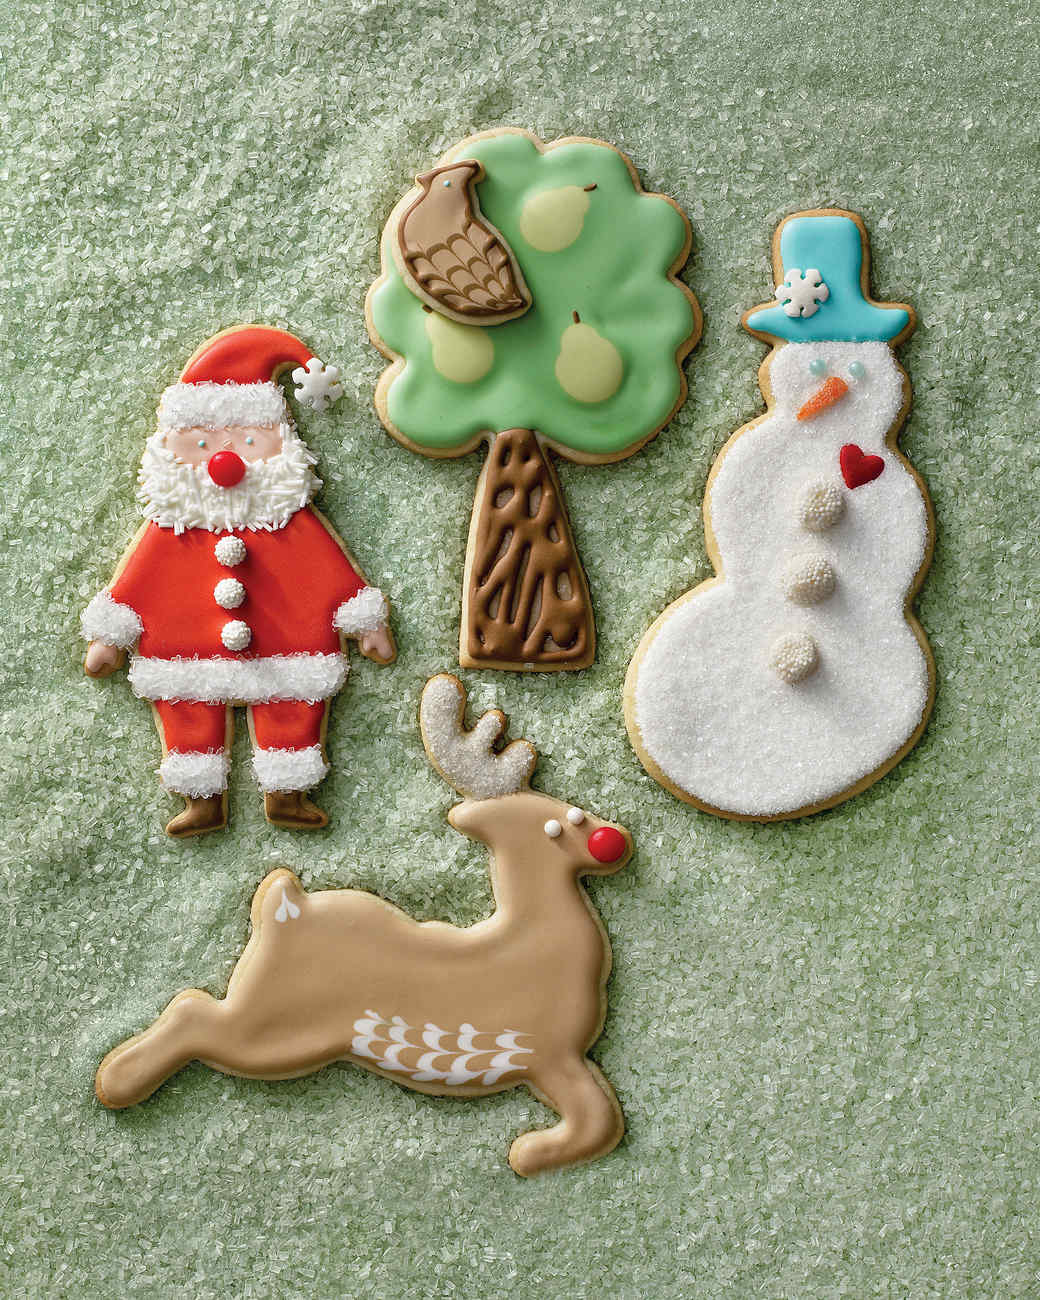 Discussion on this topic: Lemon Ornament Cookies, lemon-ornament-cookies/